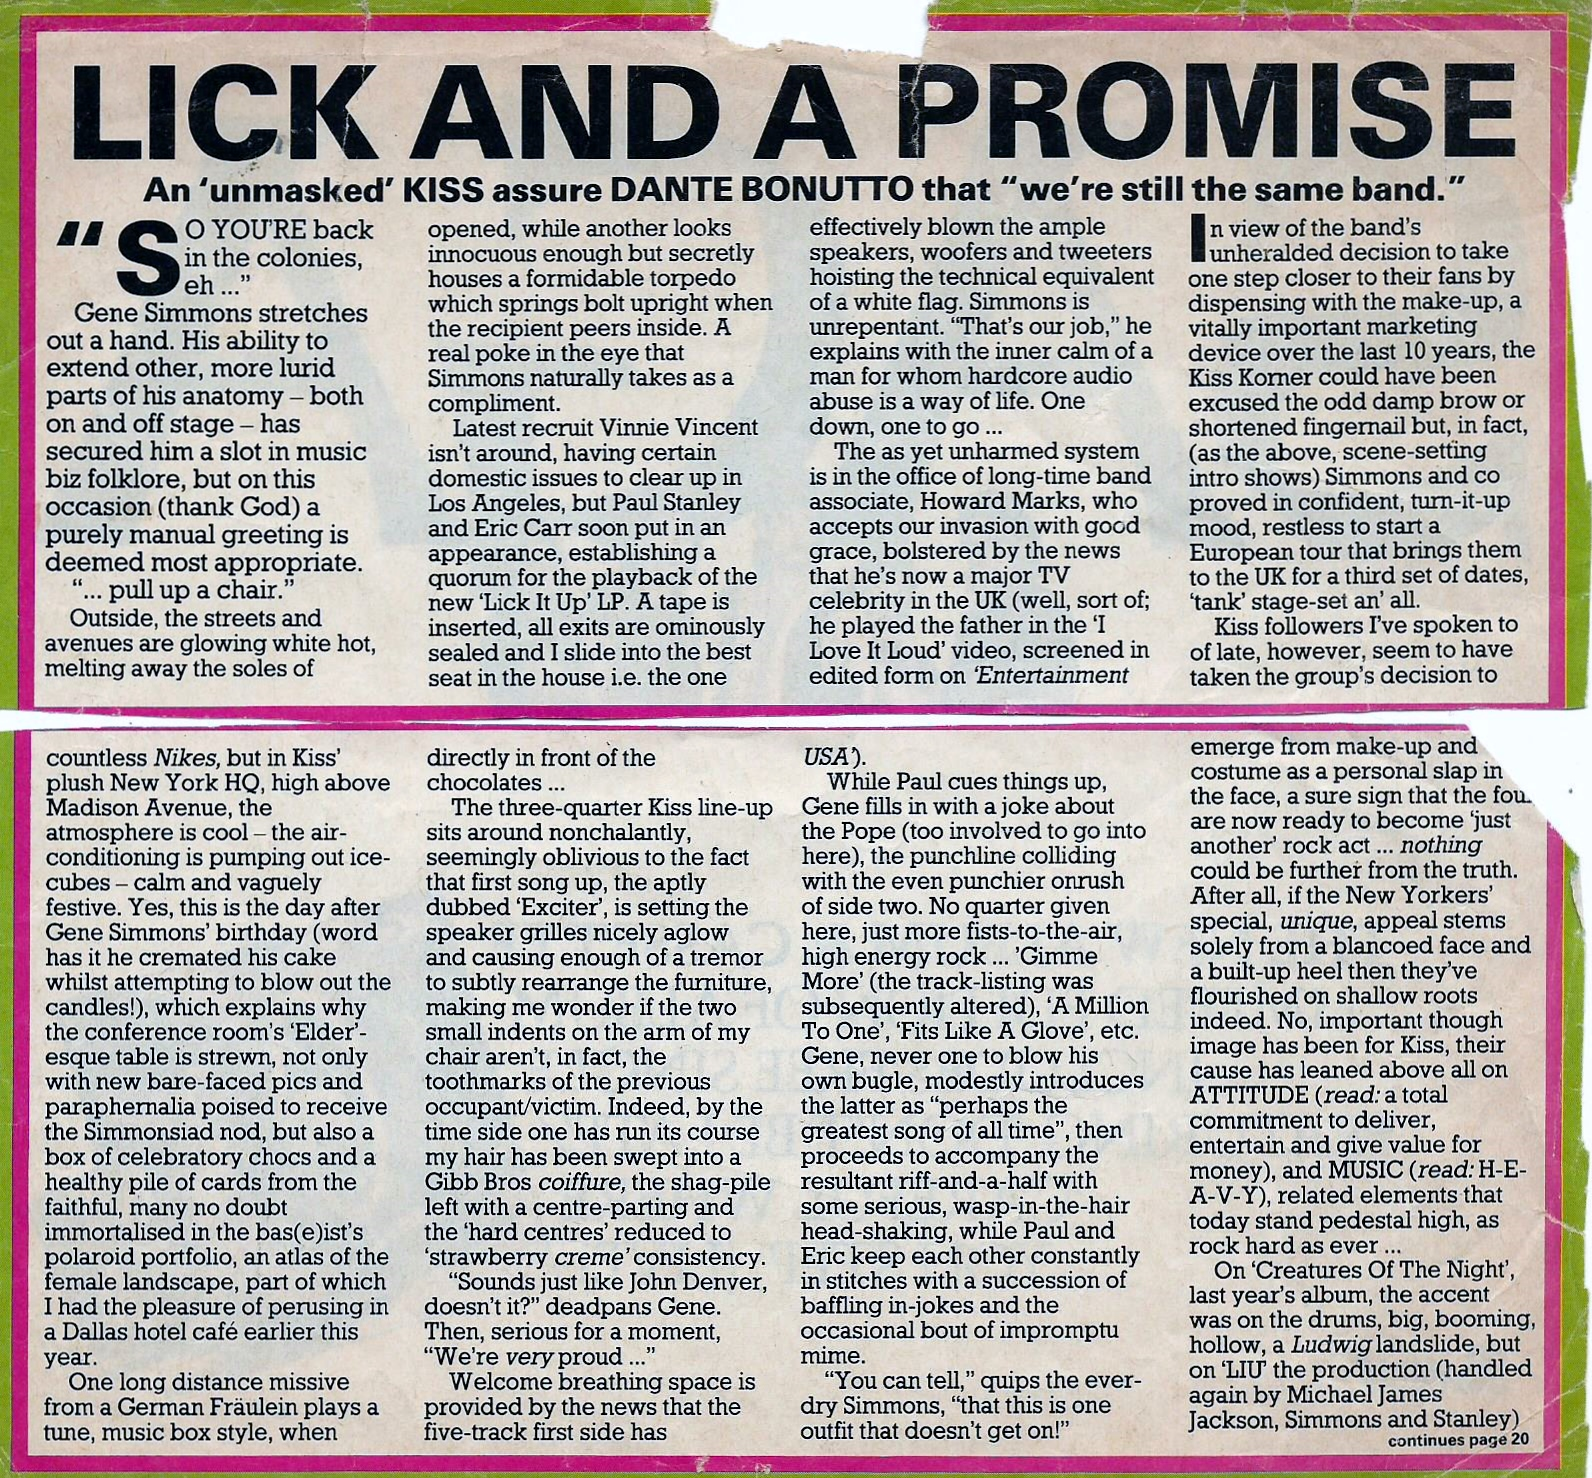 That can lick and a promise font really